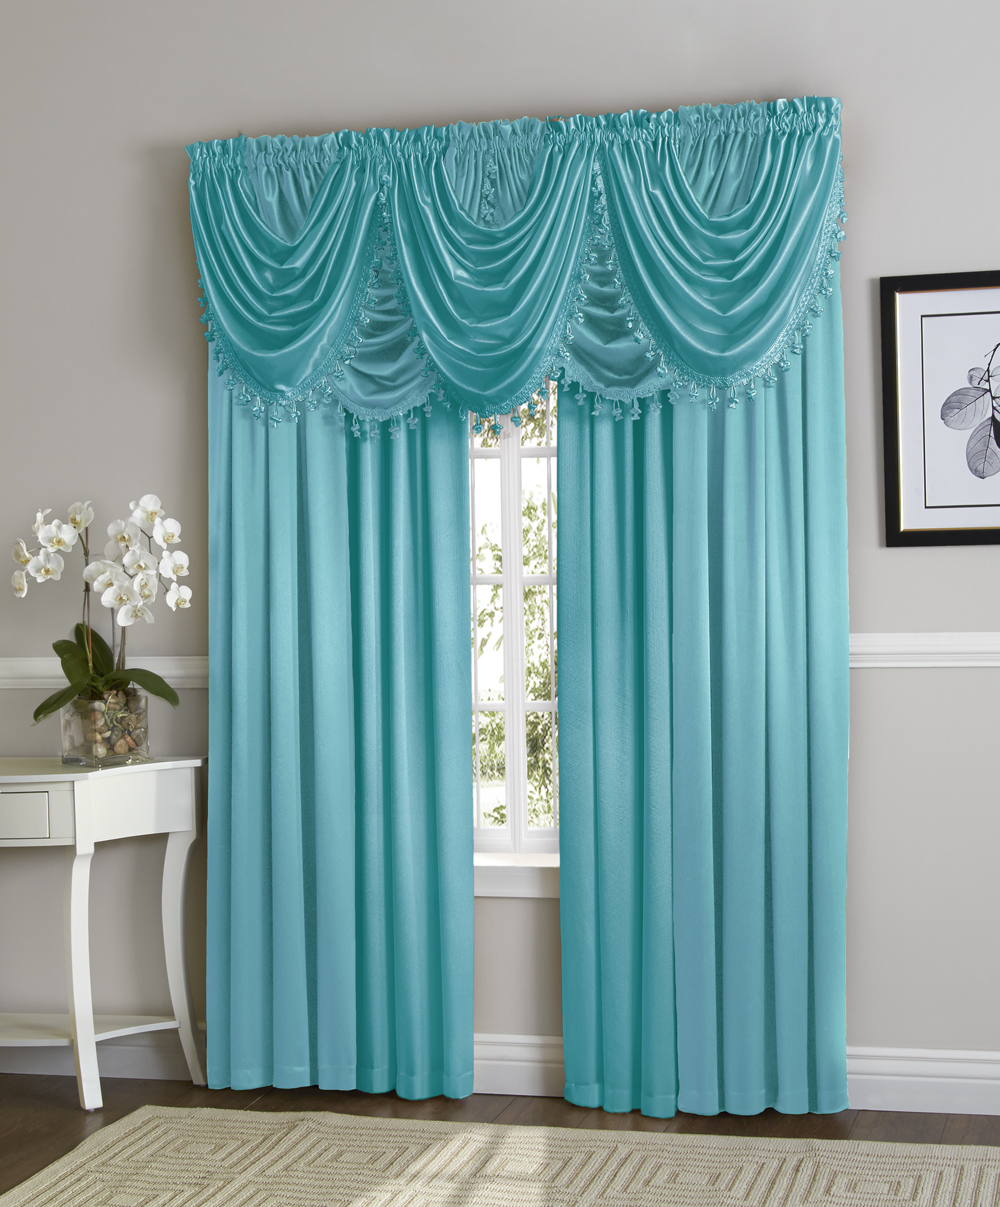 Hyatt Window Curtain & Fringed Valance Complete 9 Piece Window Treatment Set Aqua by